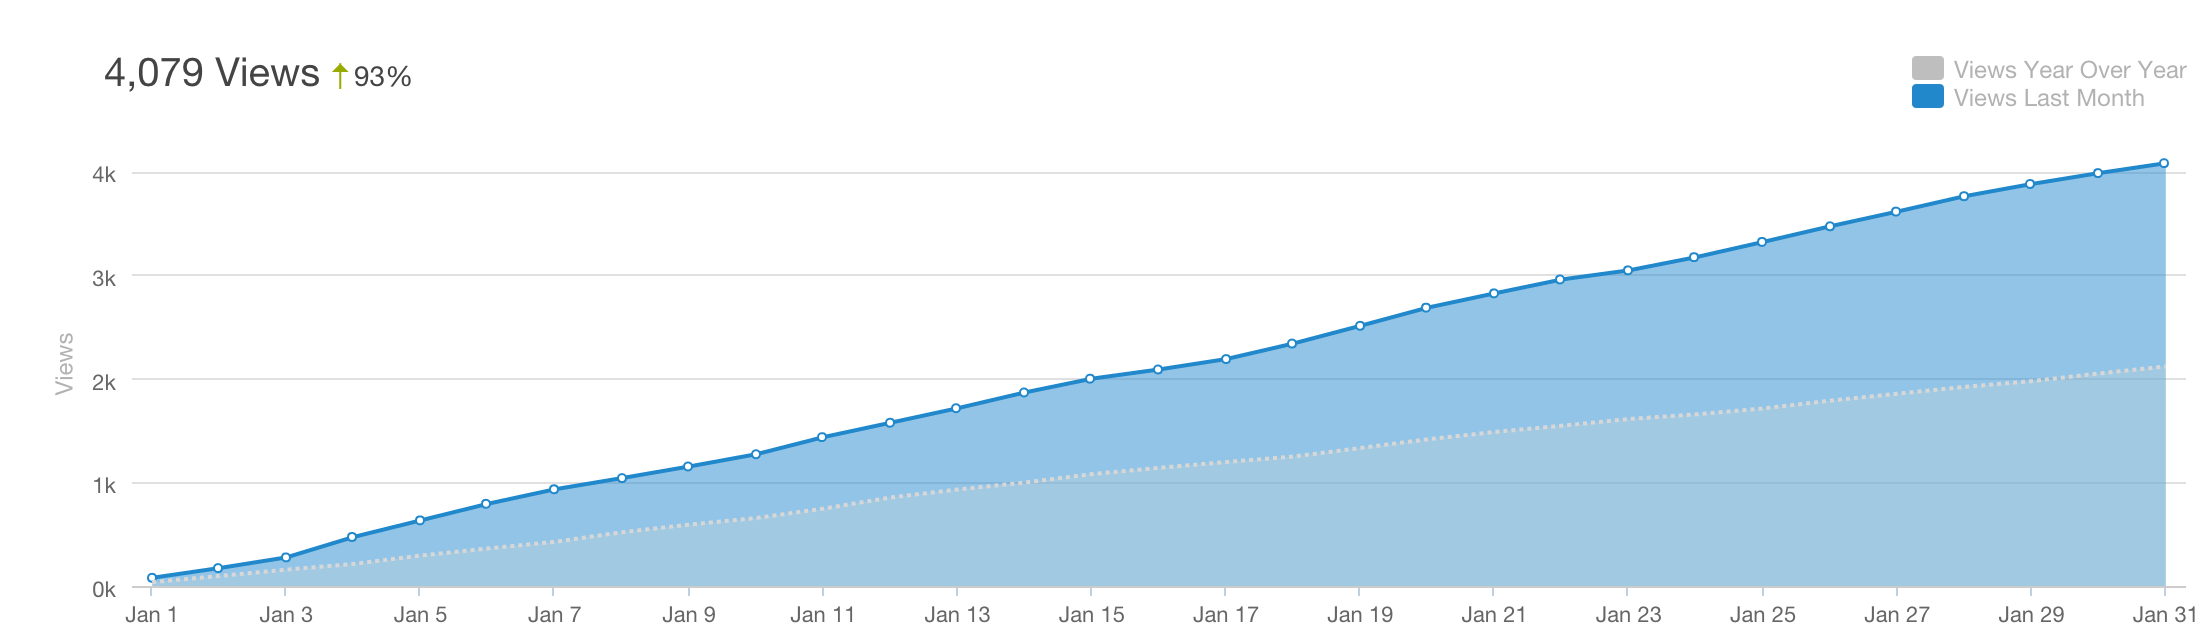 Express_Blog_Views_Year_Over_Year.png